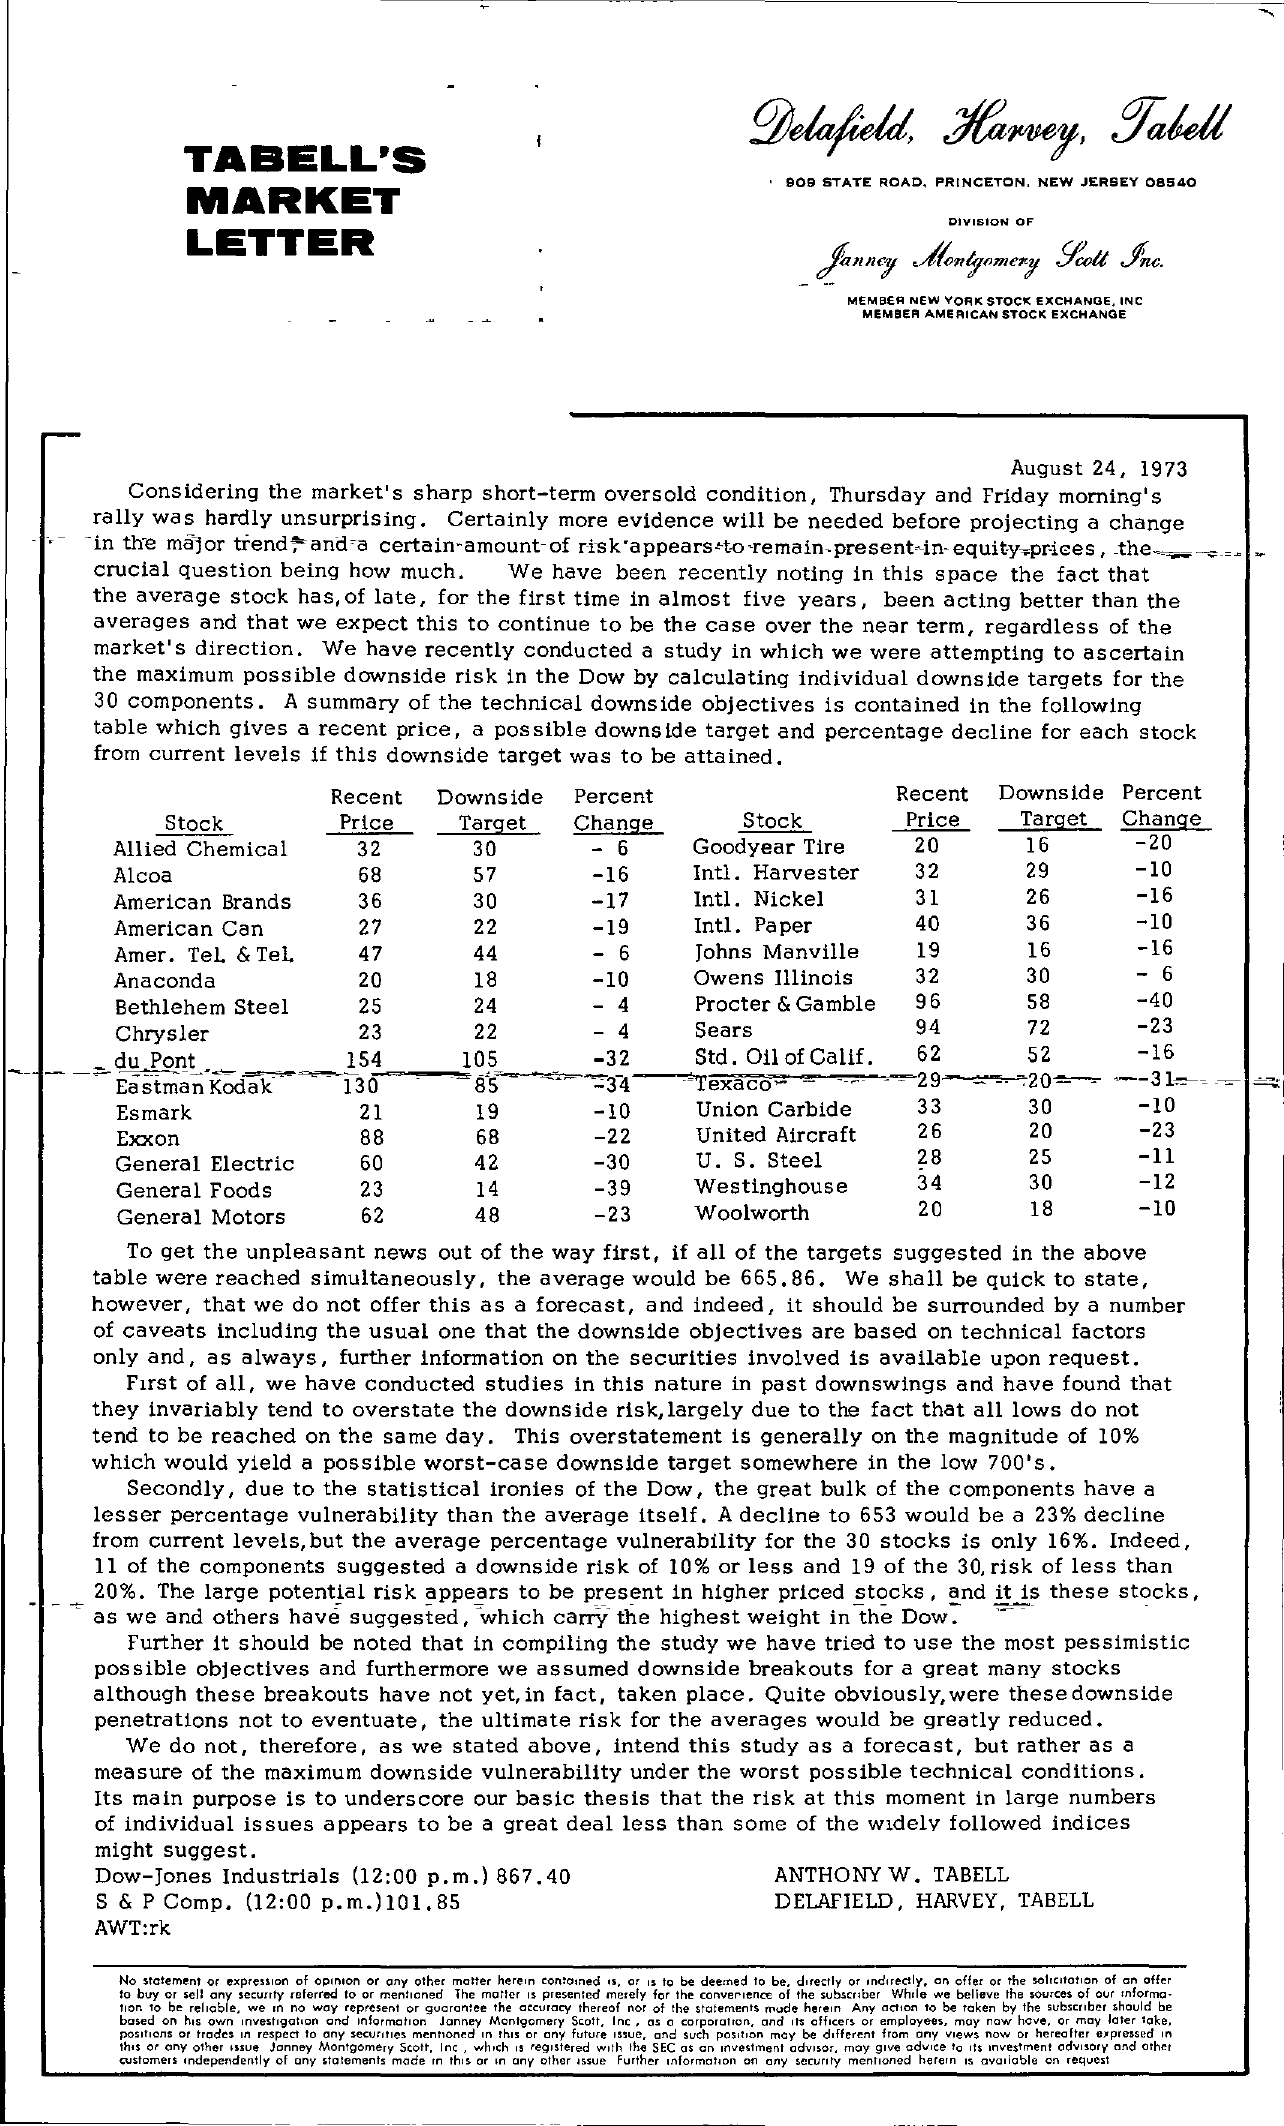 Tabell's Market Letter - August 24, 1973